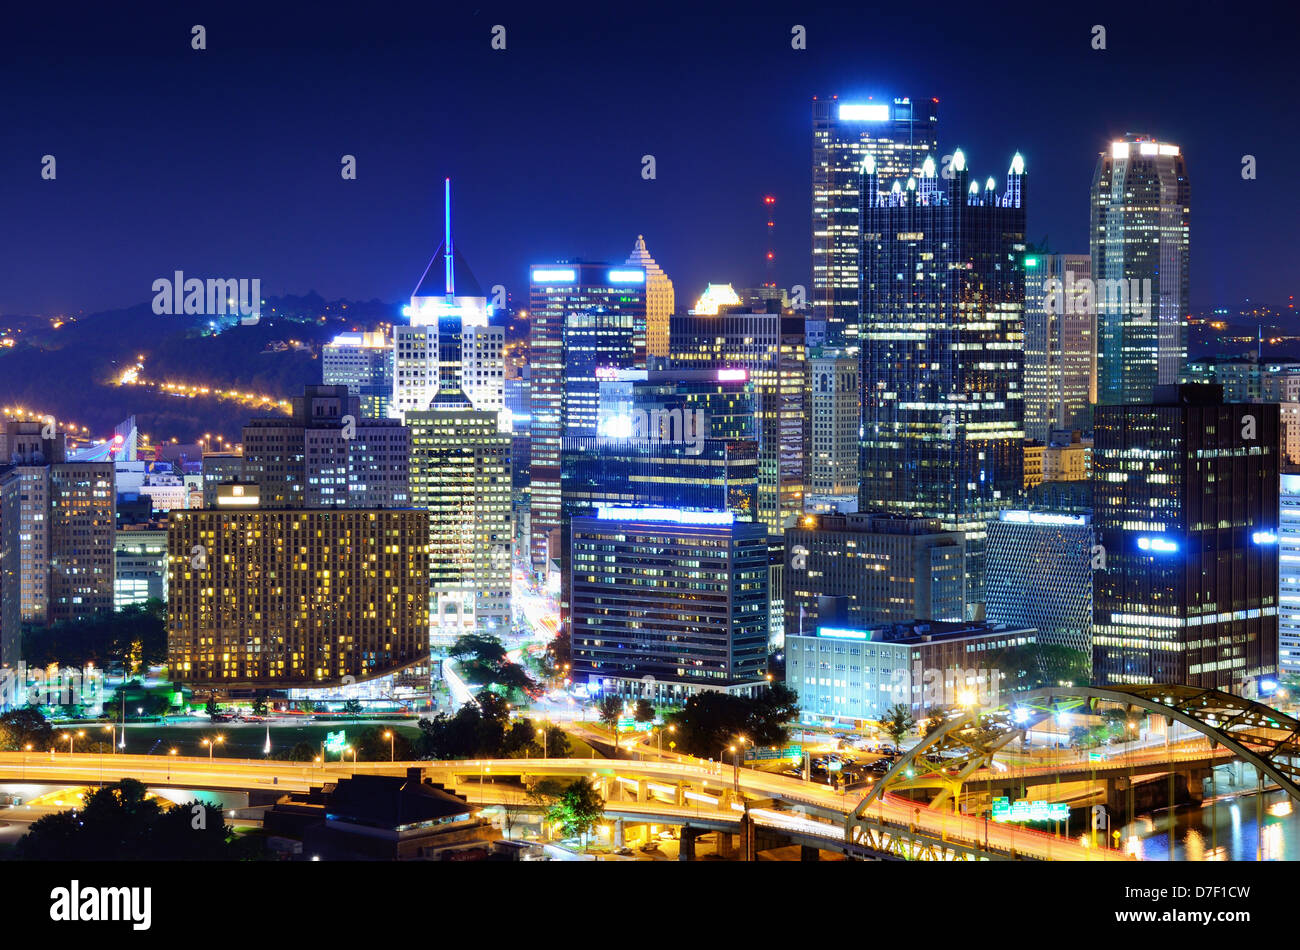 A Pittsburgh, Pennsylvania, USA cityscape. - Stock Image